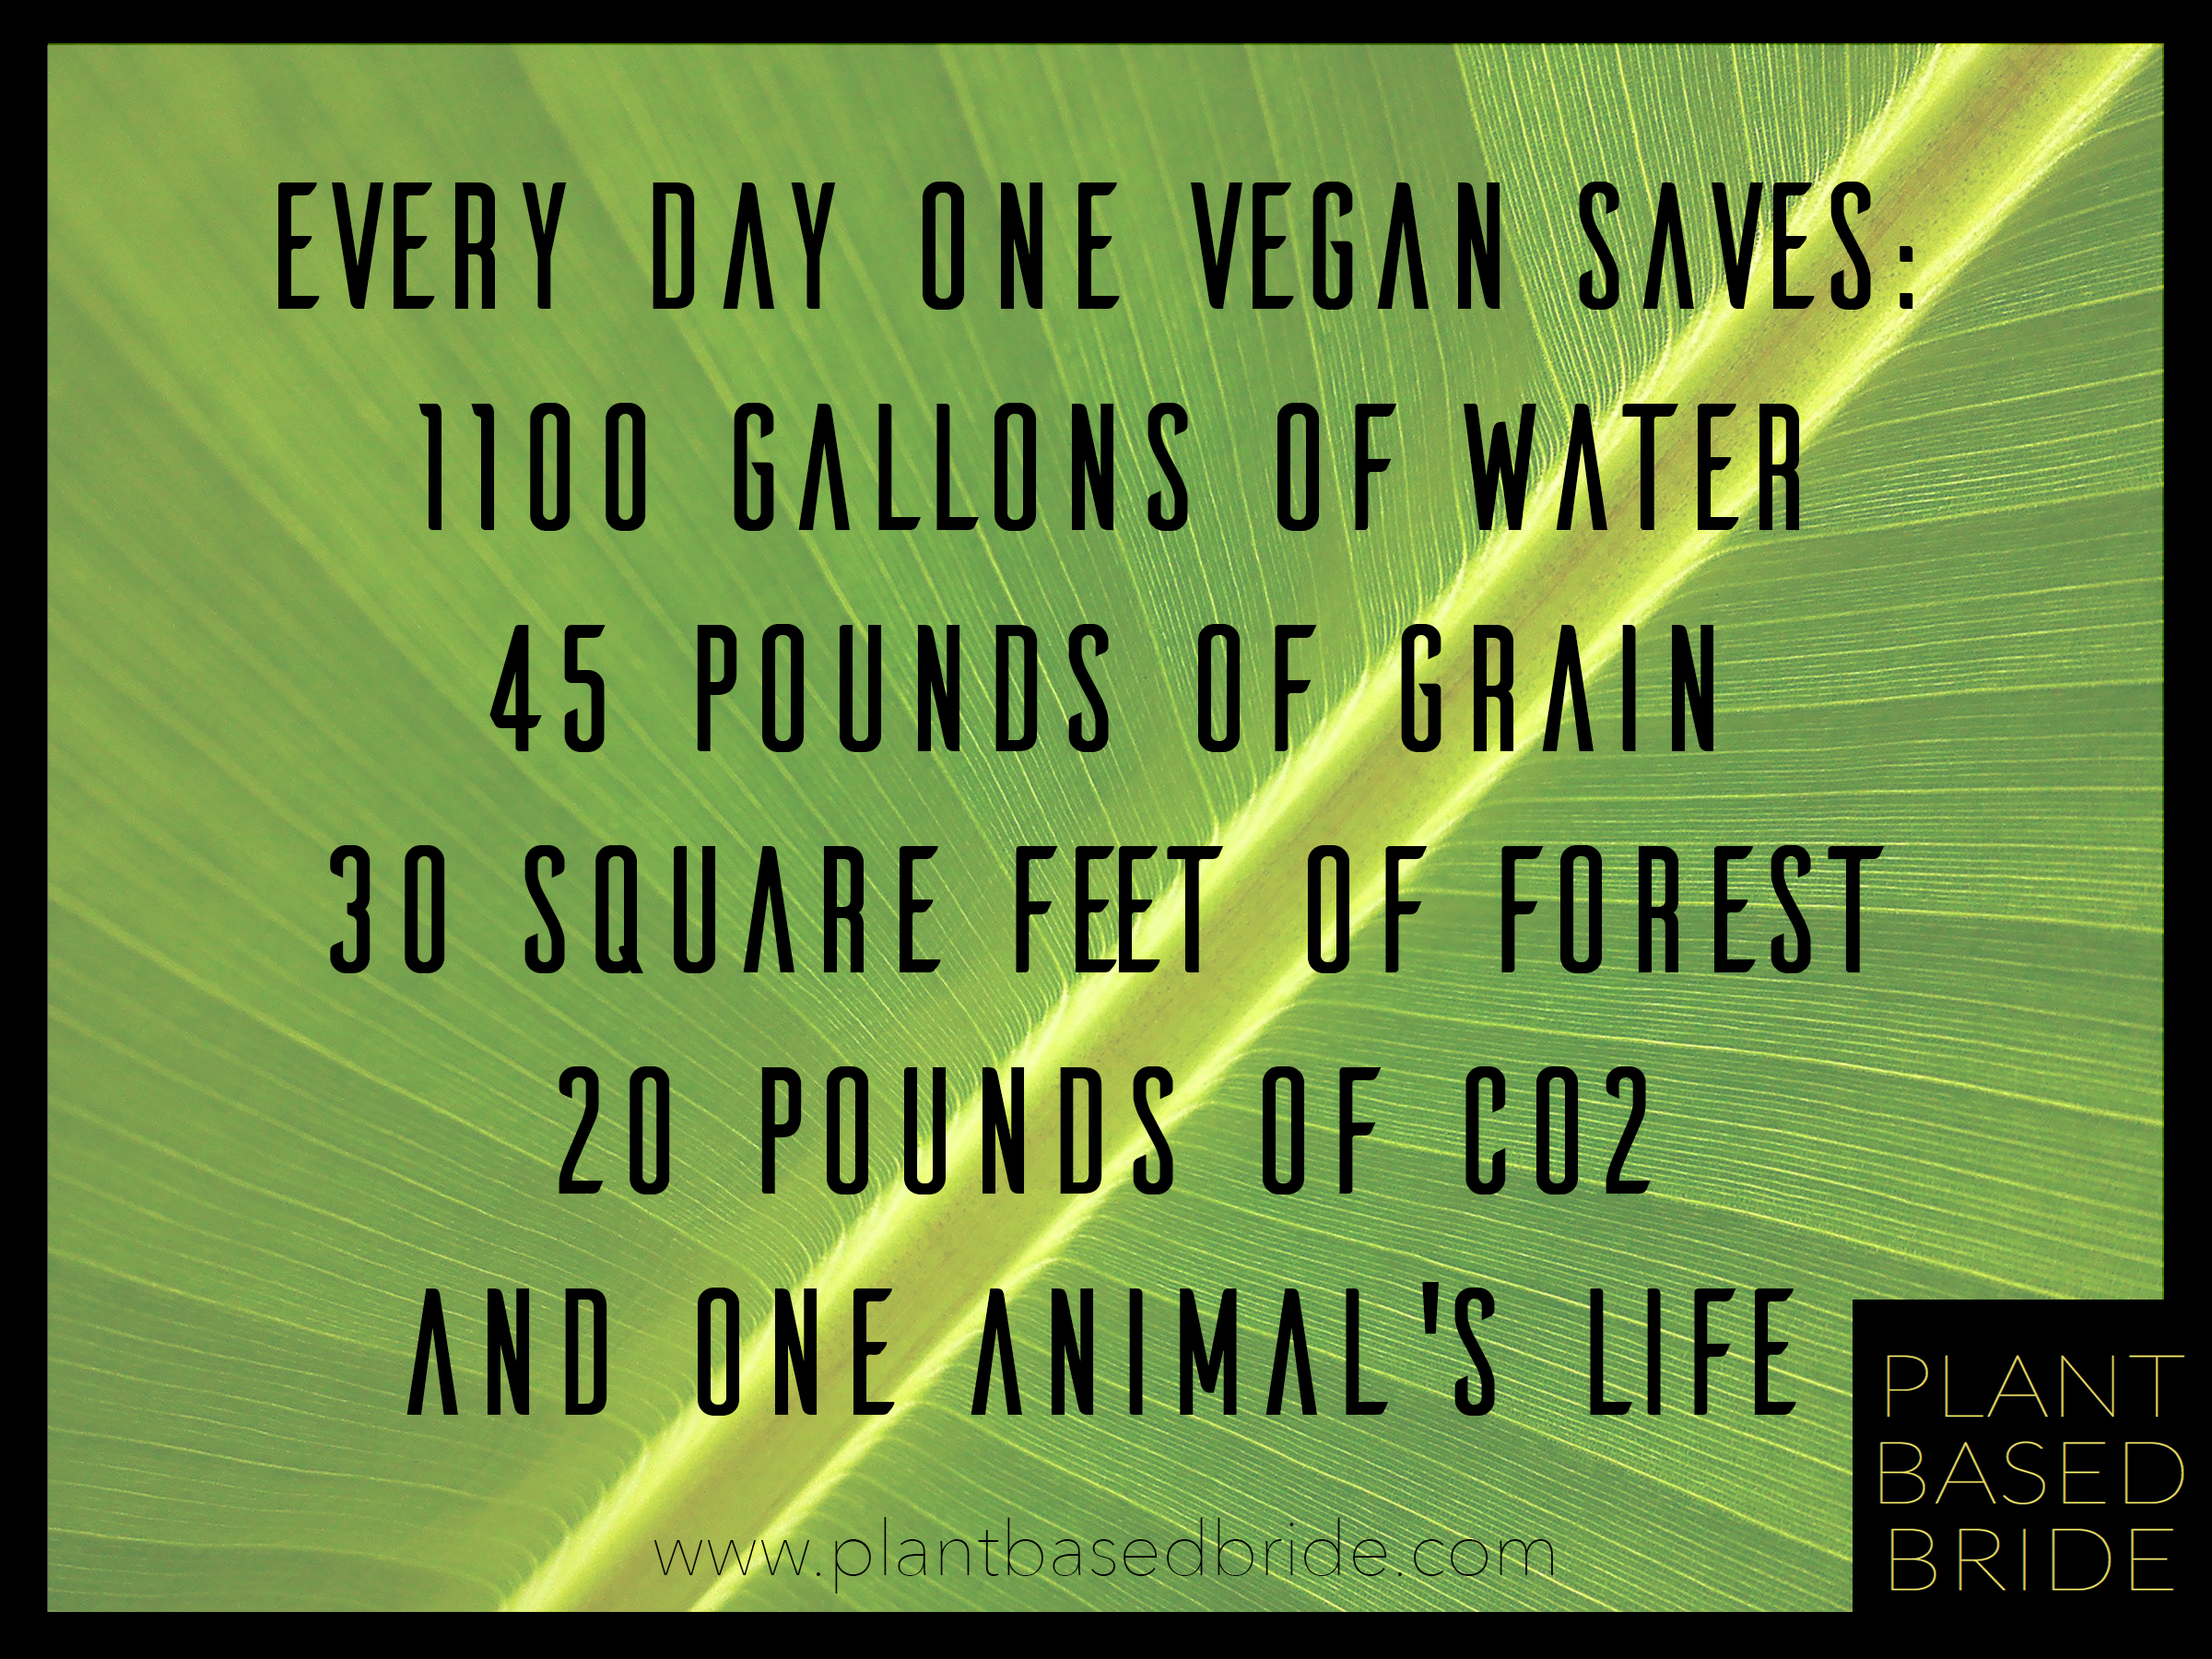 Even one vegan day makes a HUGE difference to our planet!  Go vegan!